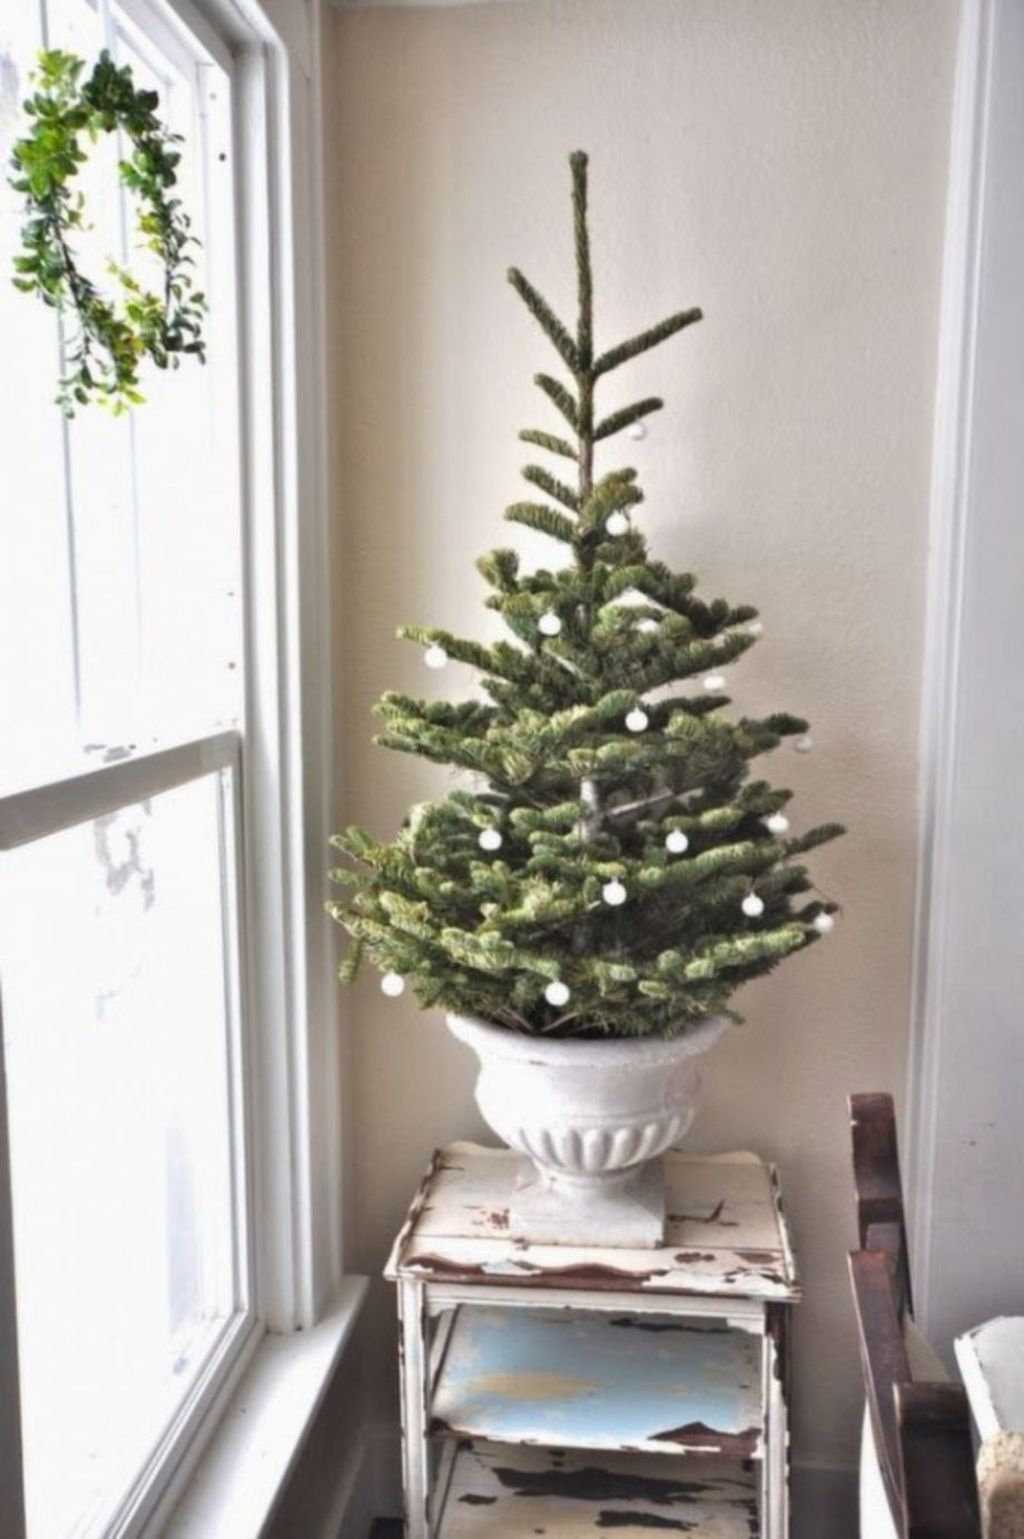 Space Saving Christmas Tree Ideas Suitable For Small Rooms 04